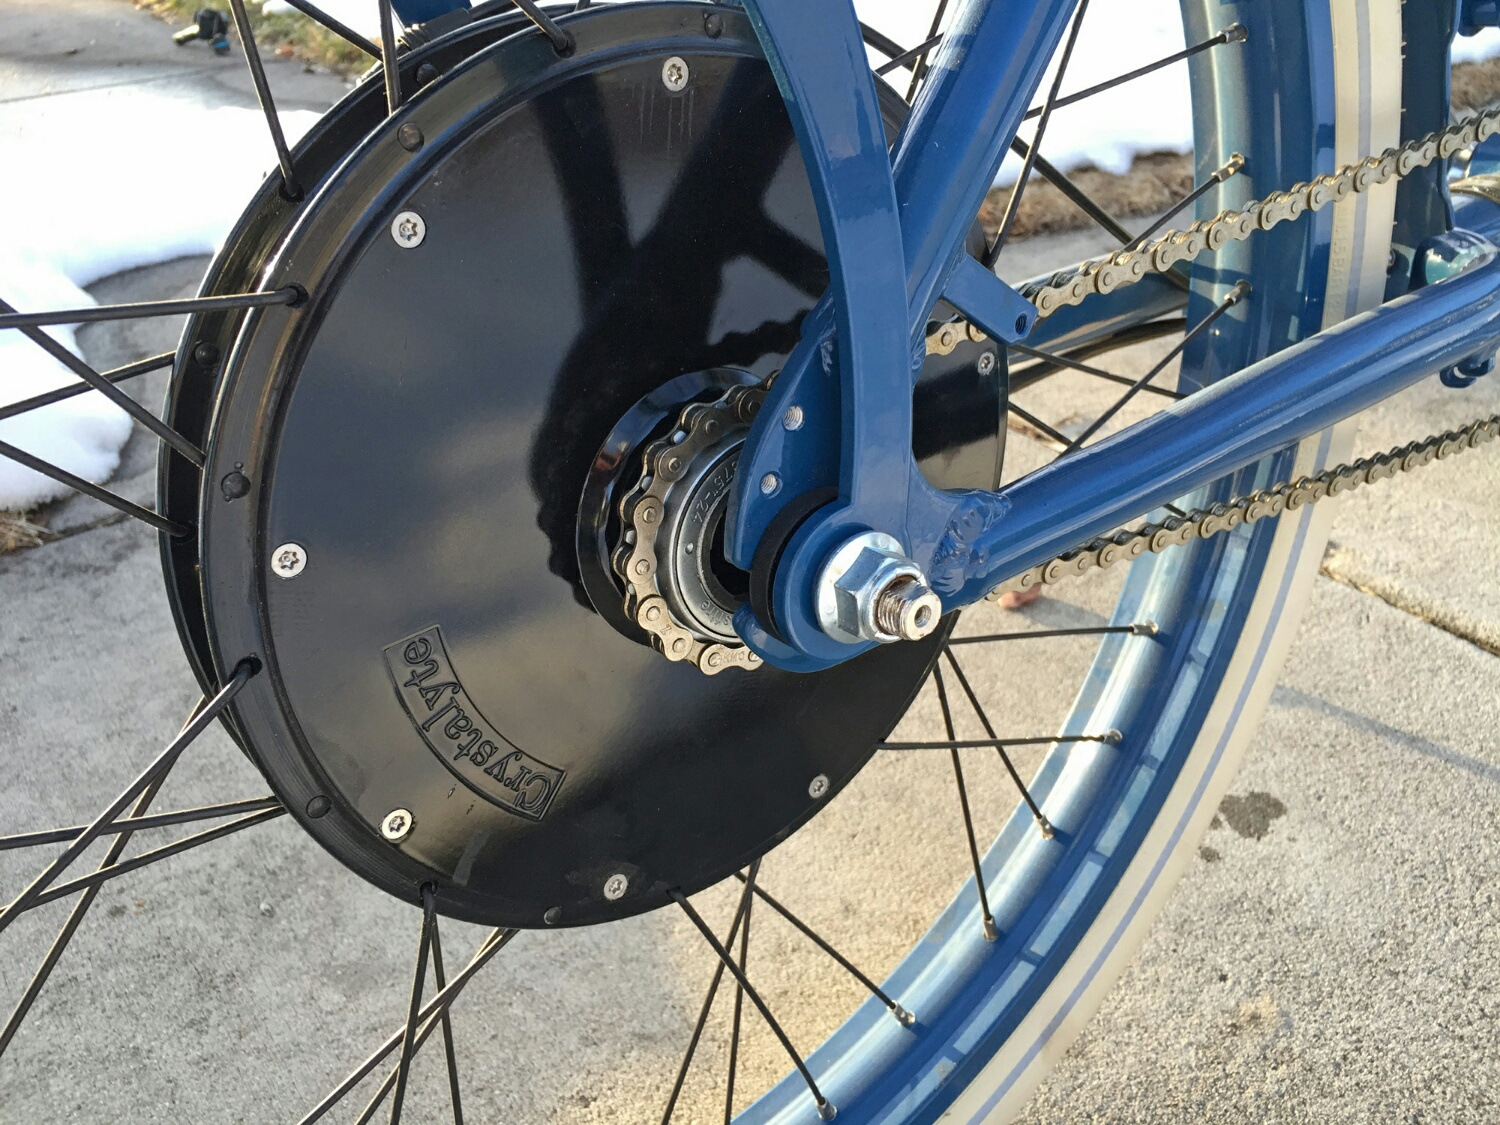 Crystalyte Hub Motor Kits power the bike using a hub motor built into the  bicycle wheel.